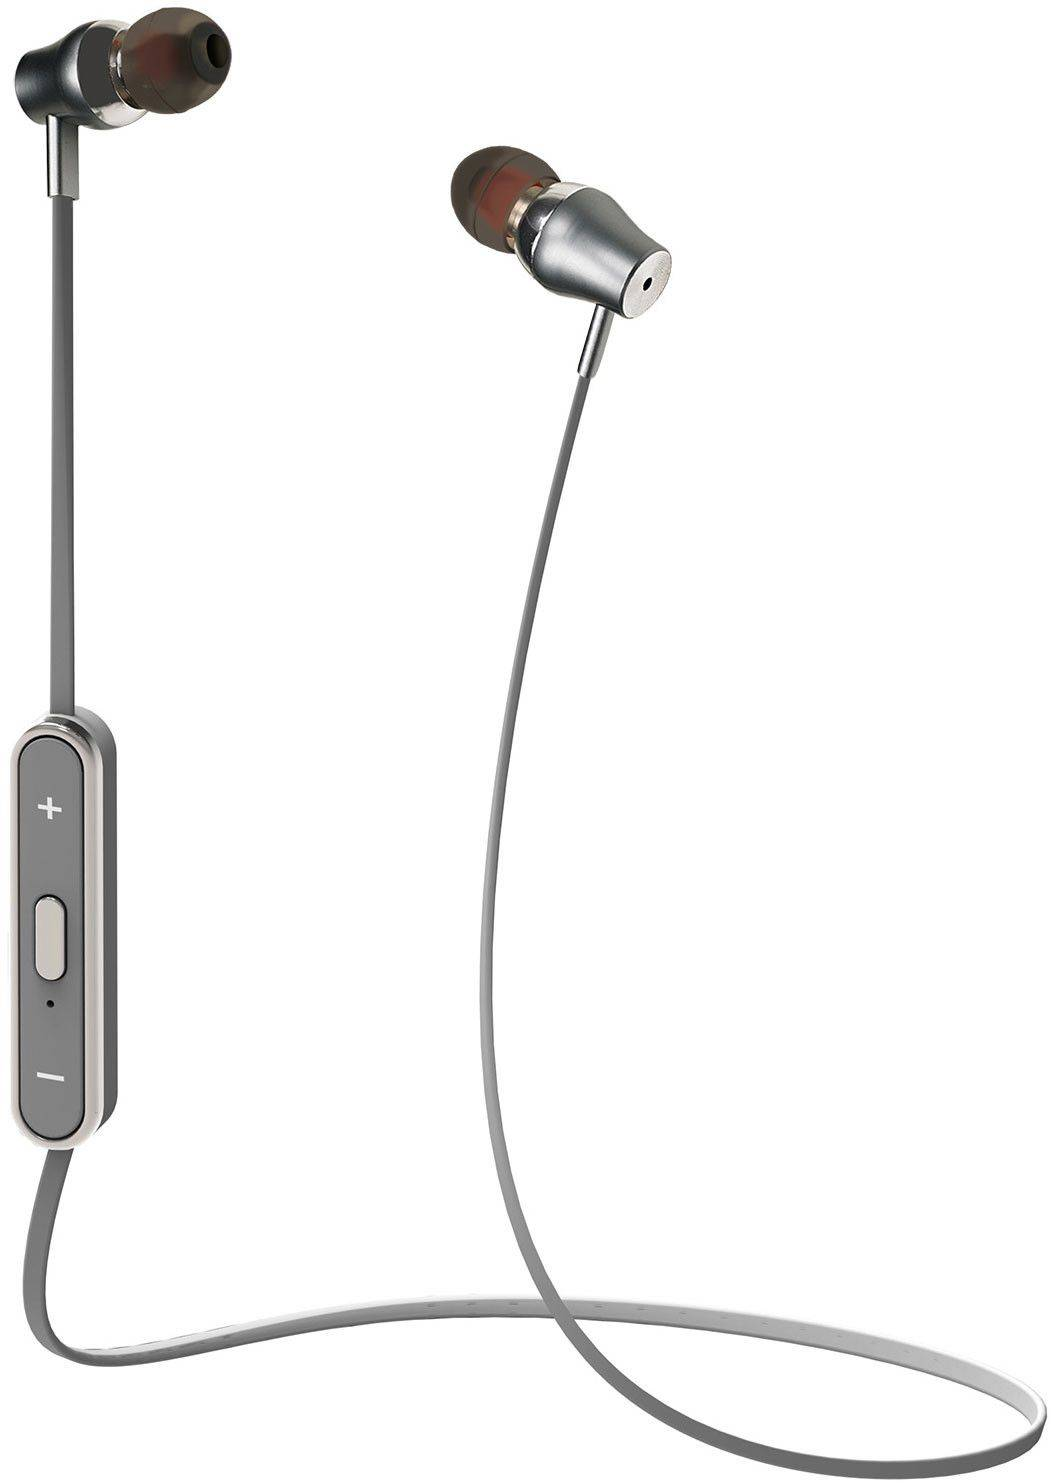 Celly Bluetooth Stereo Headset - Musta